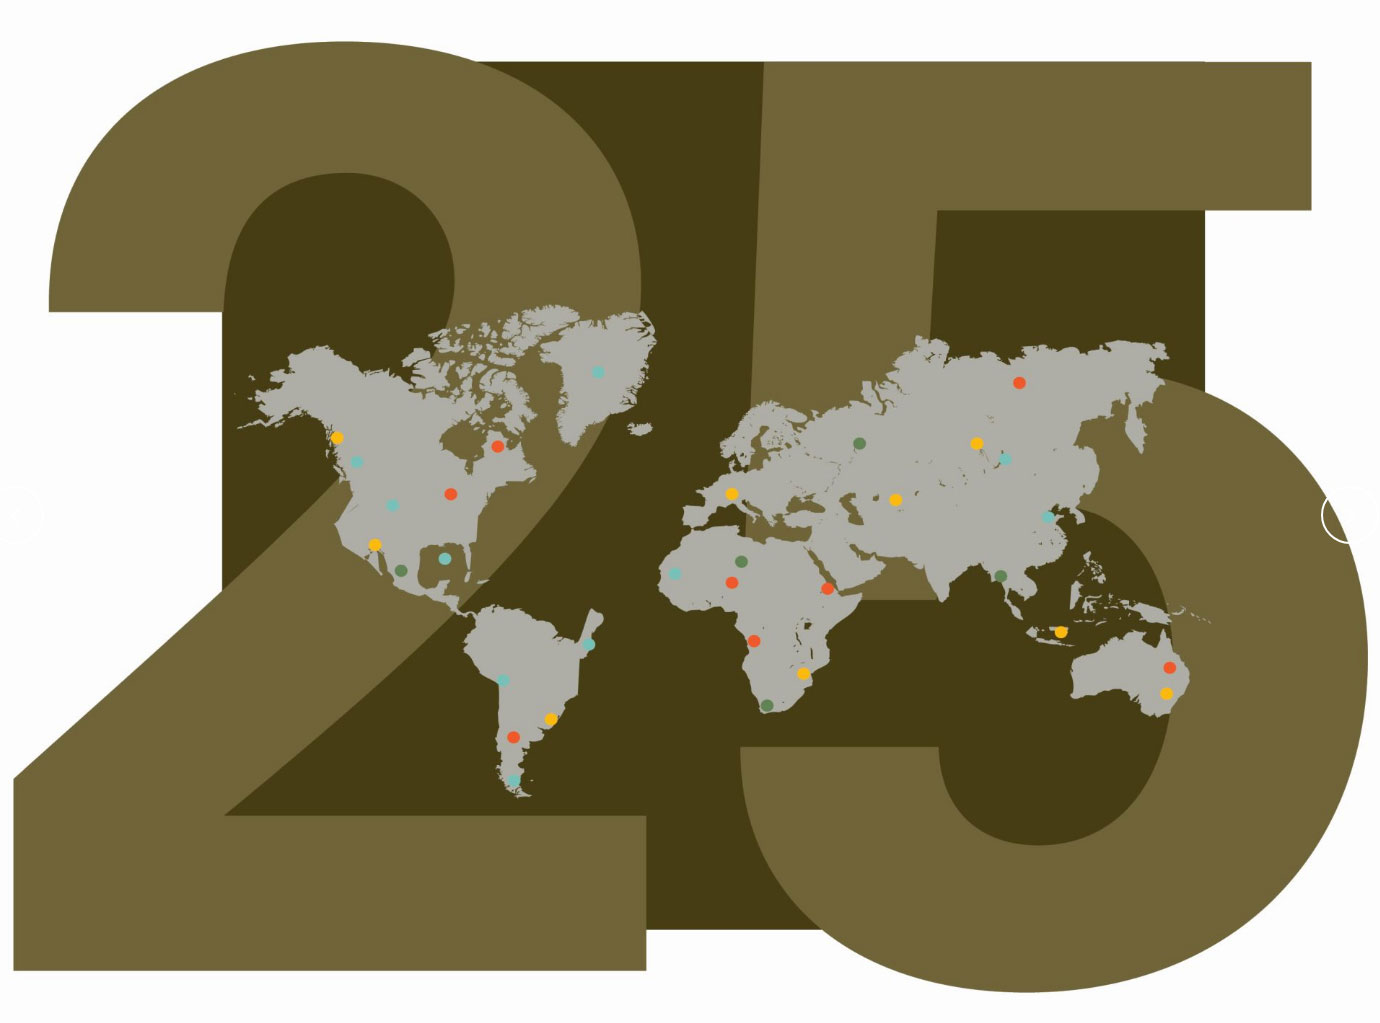 olive green 2 5 behind a small image of a grey world map